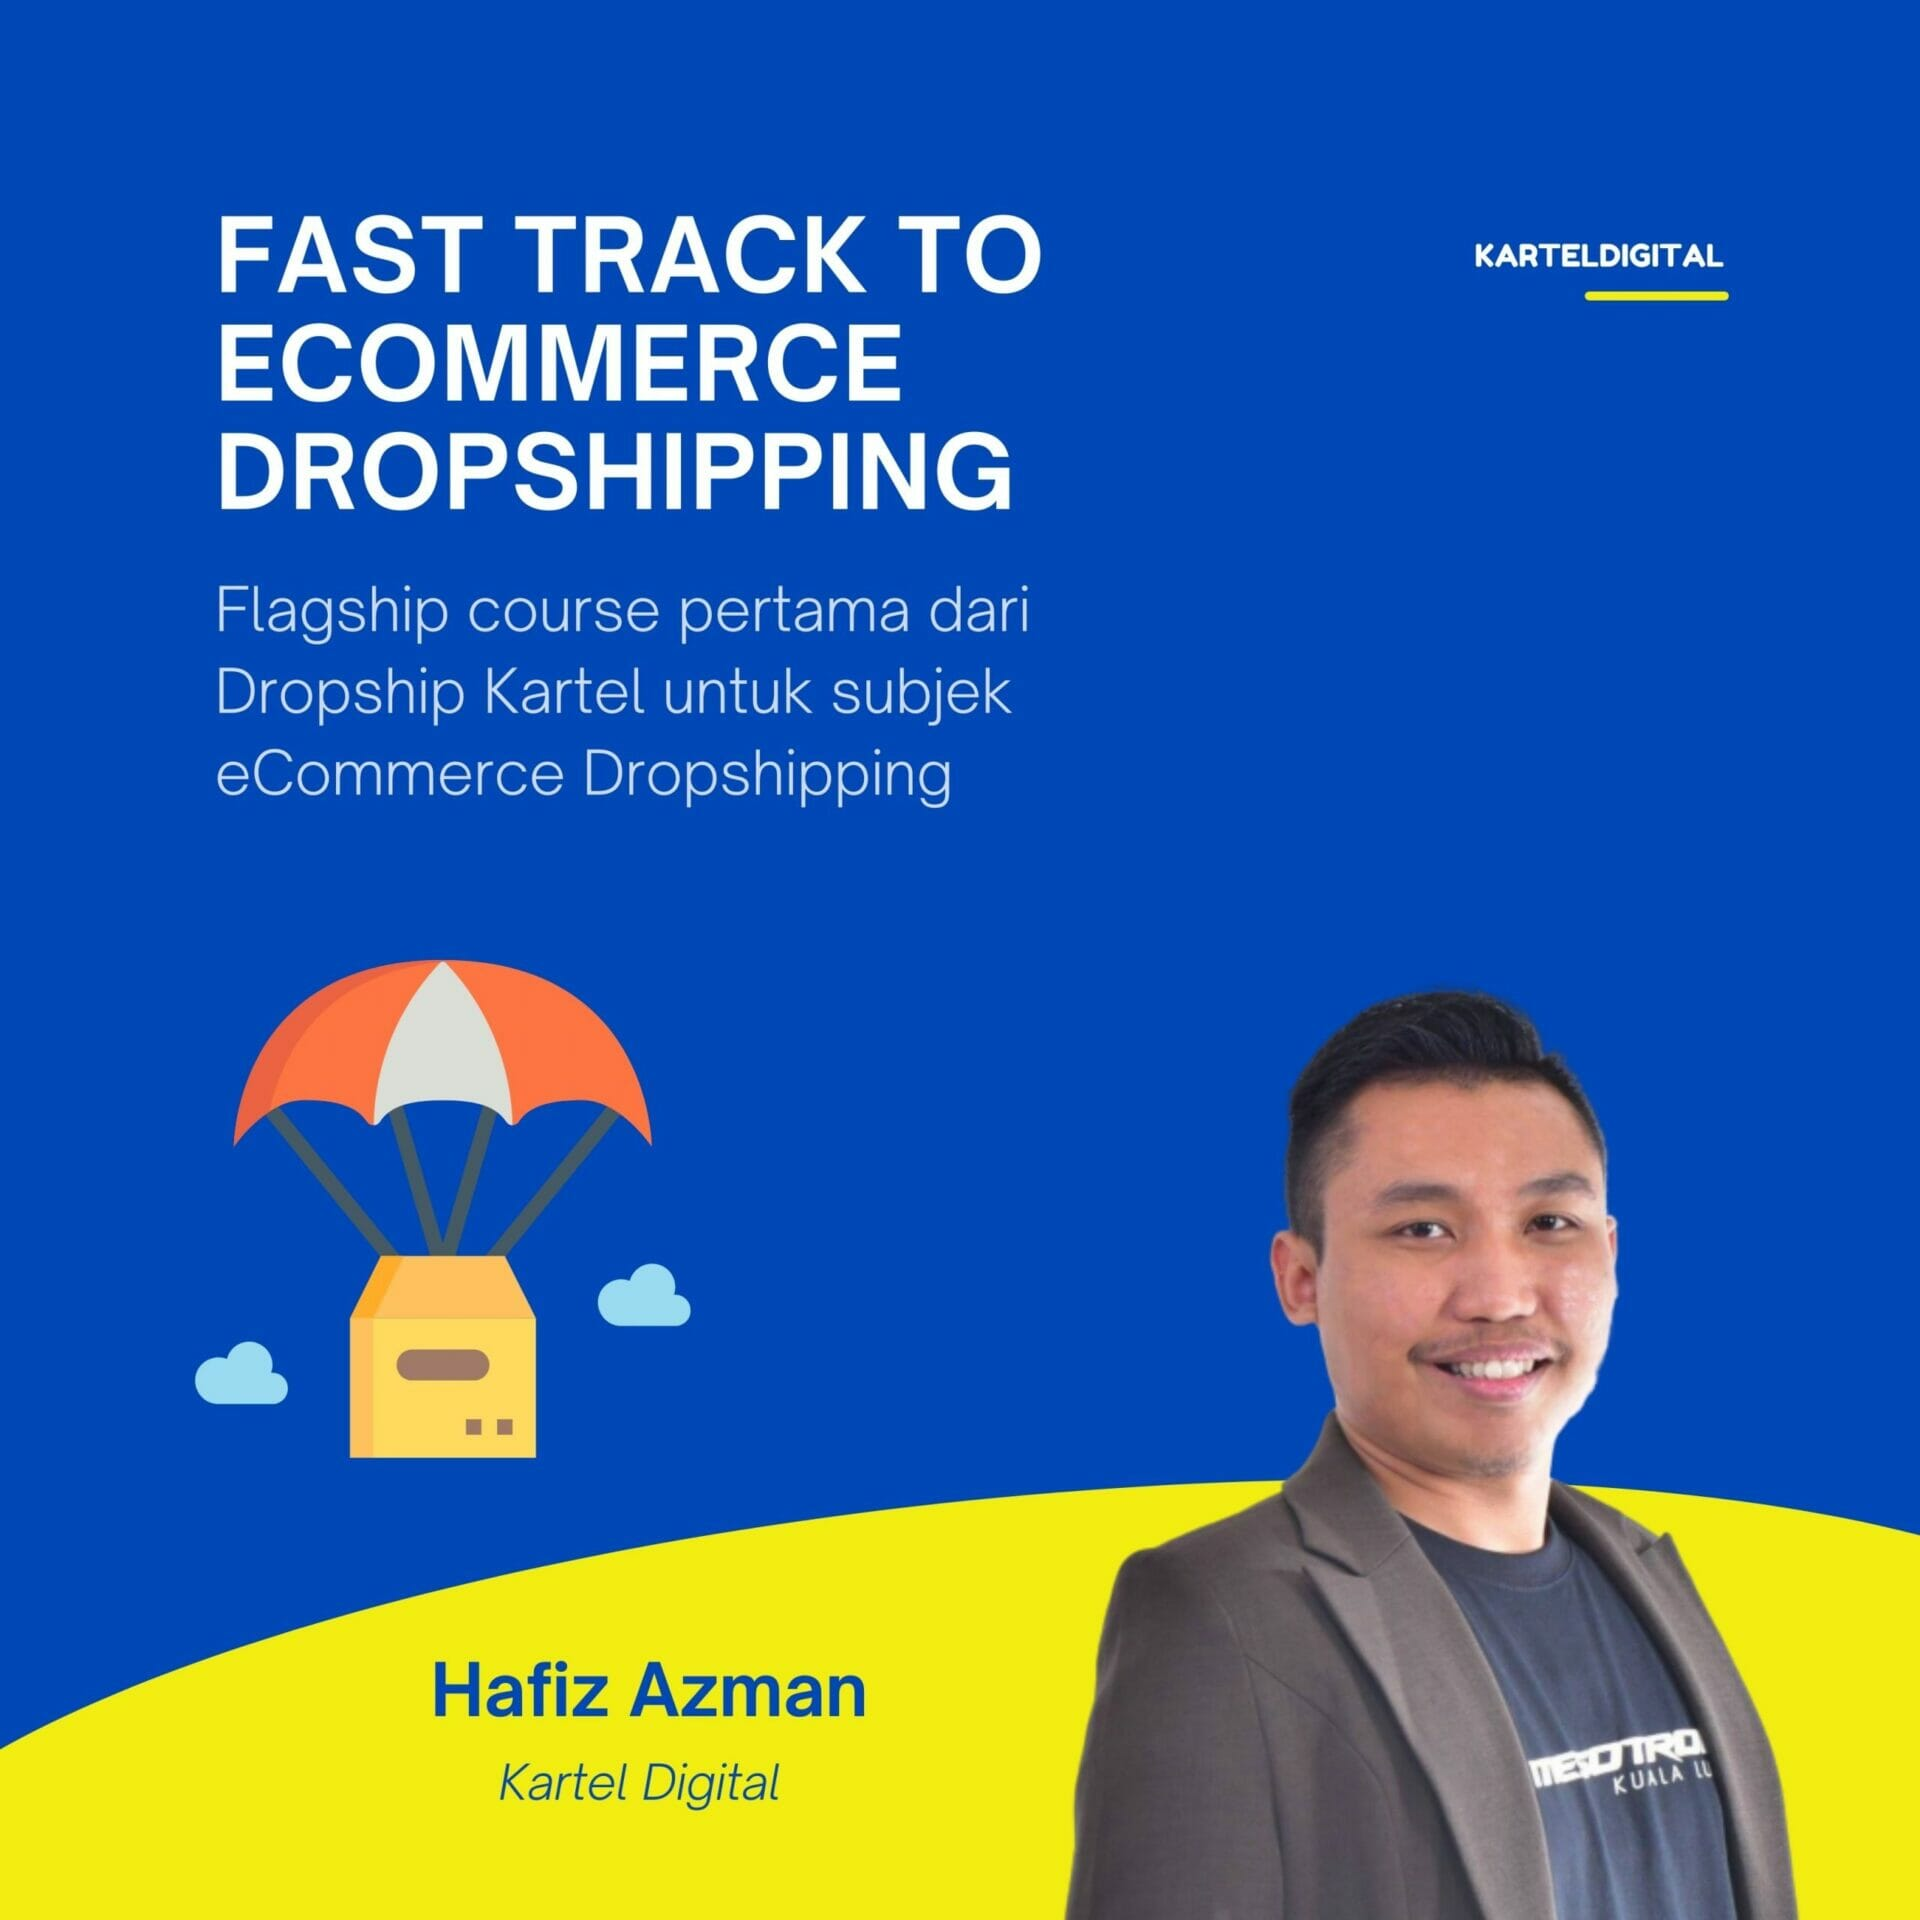 Fast Track To Ecommerce Dropshipping Dropship Kartel